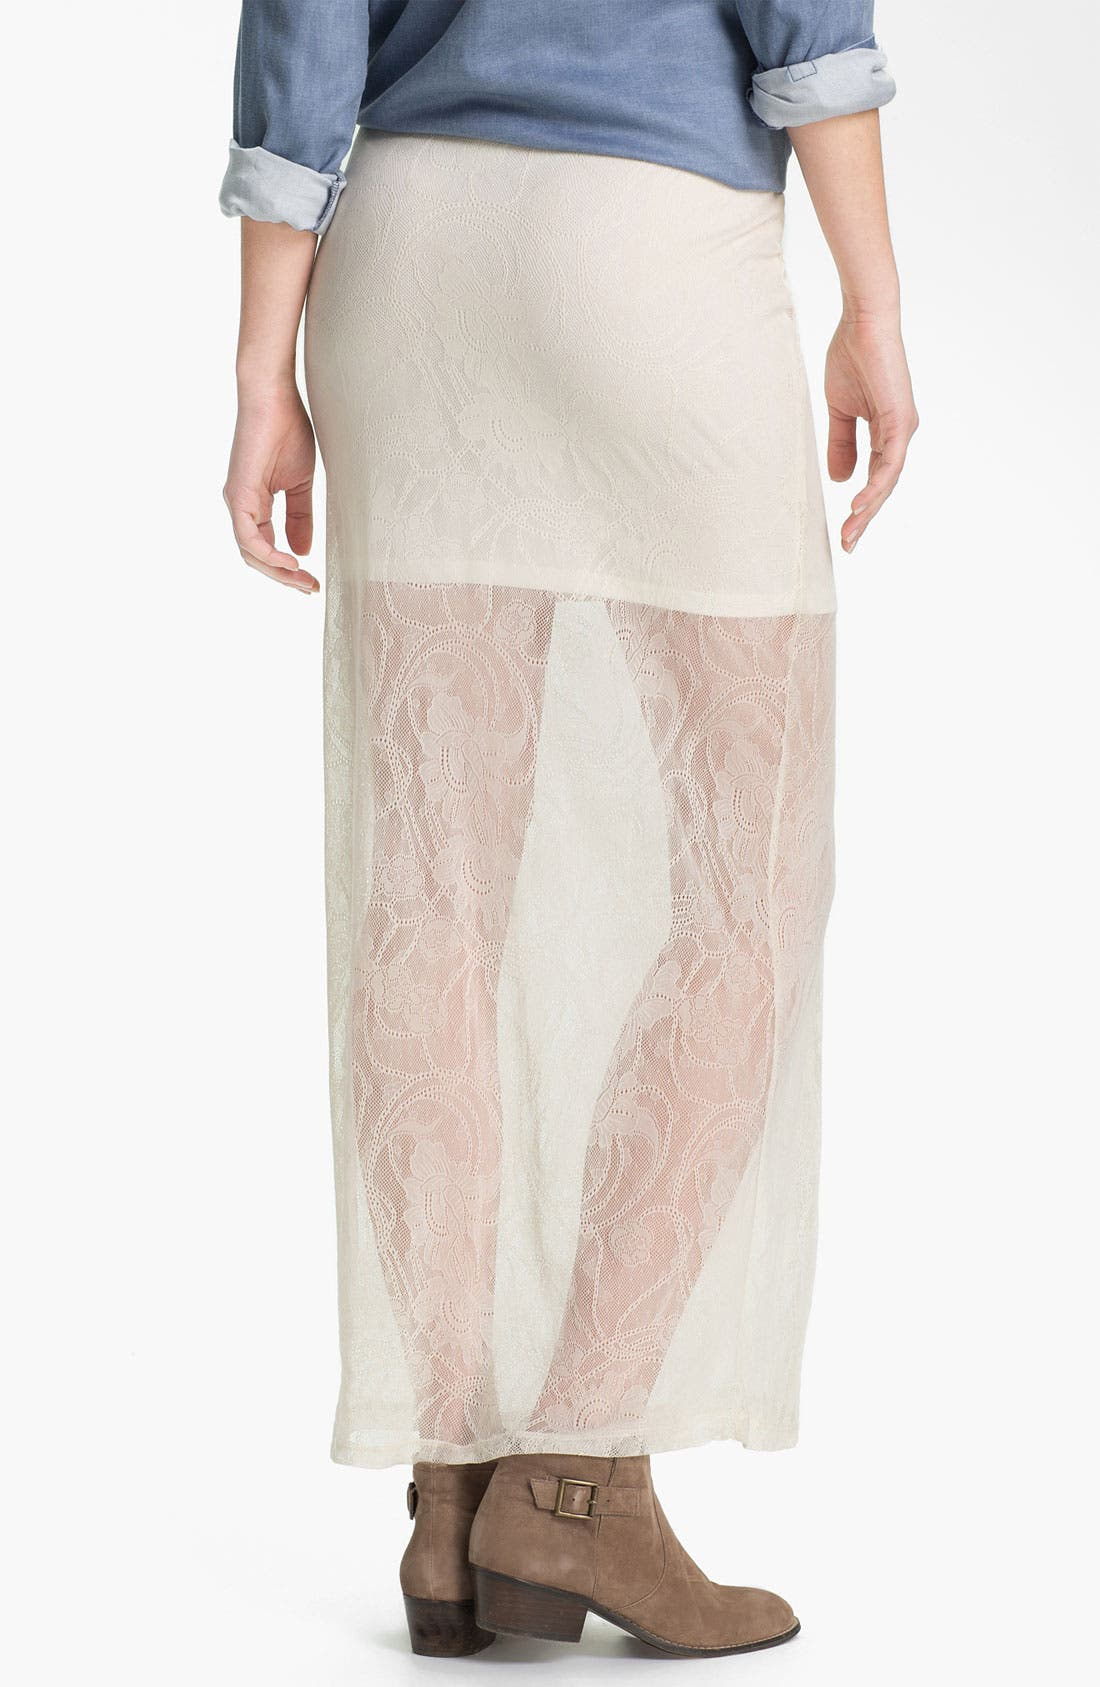 Alternate Image 2  - h.i.p. Half Sheer Lace Maxi Skirt (Juniors)